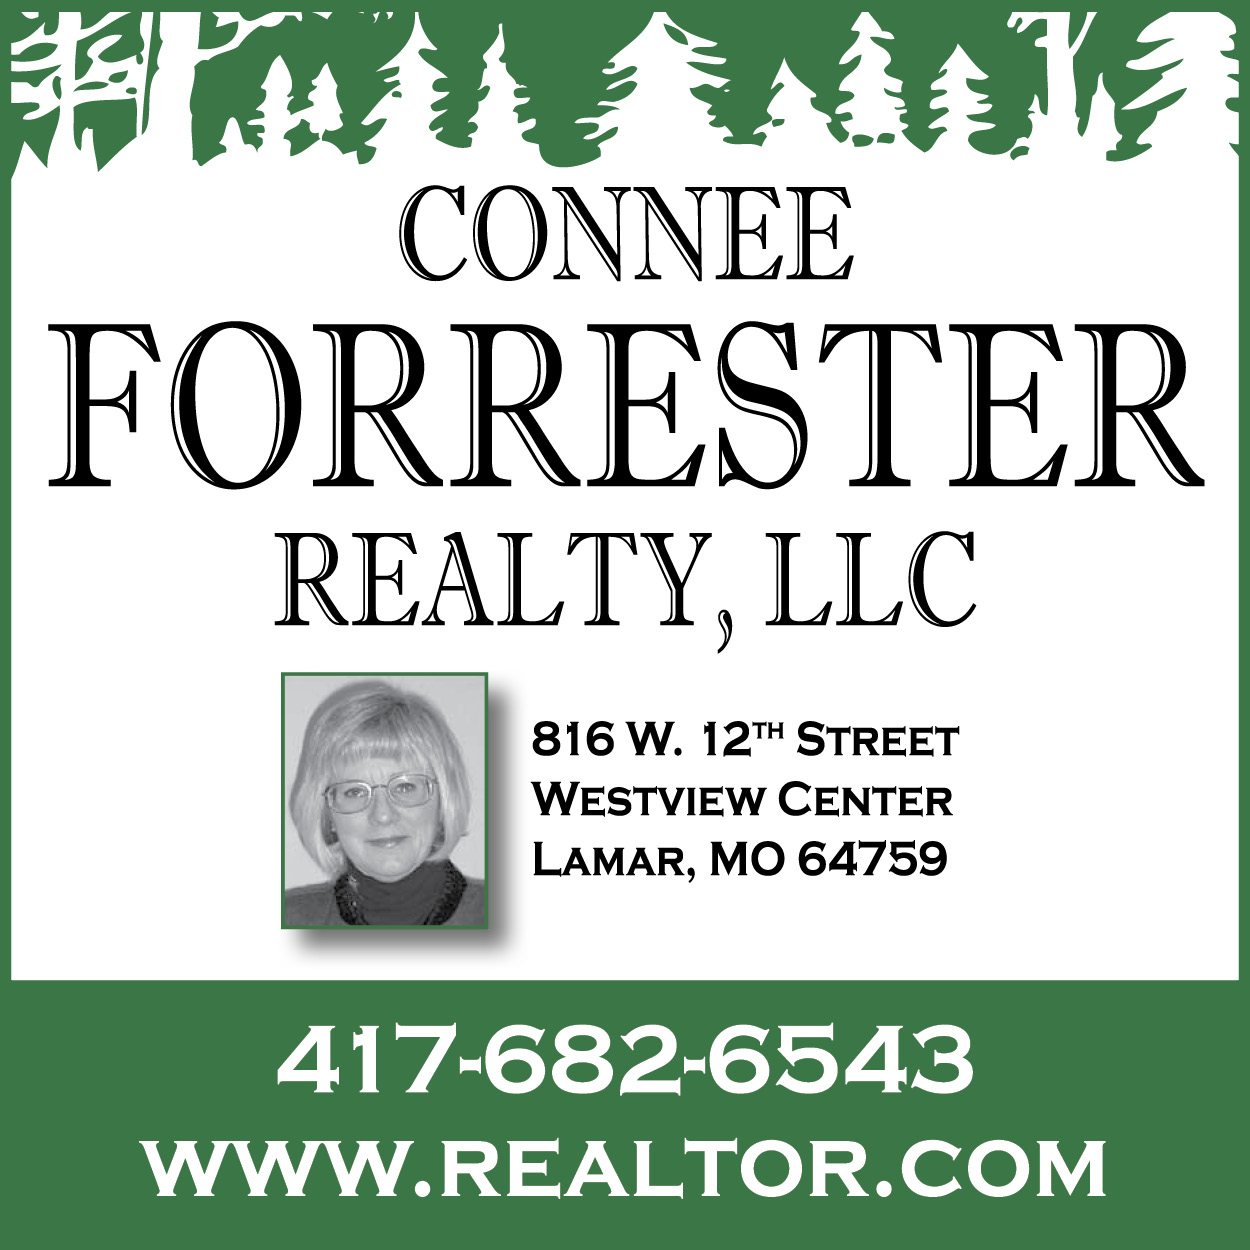 Connee Forrester Realty, LLC